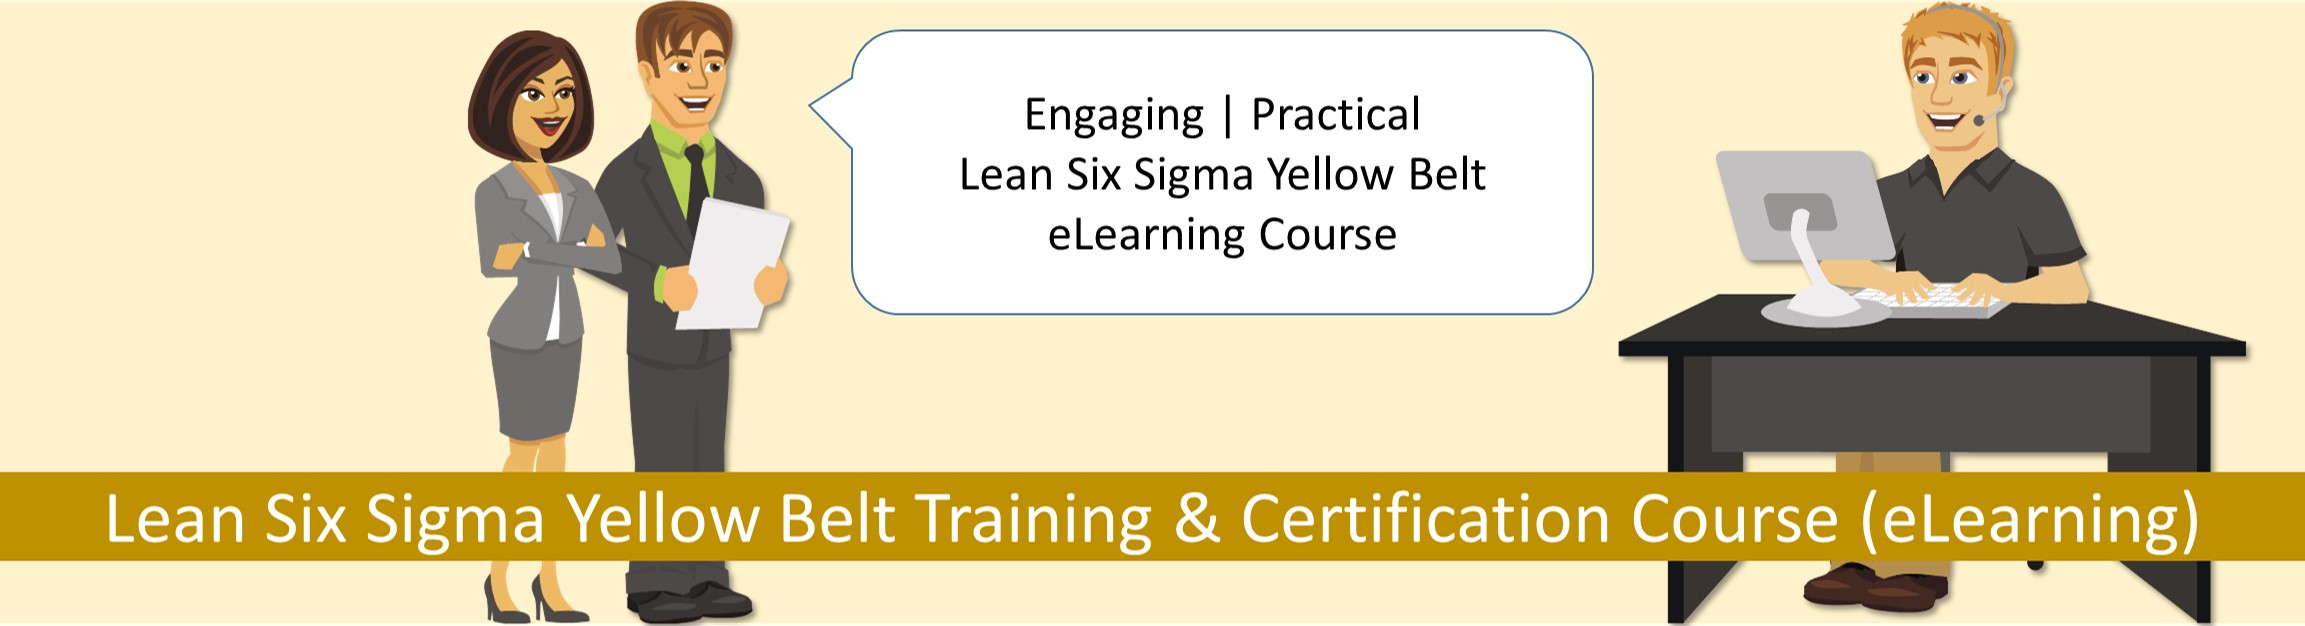 Lean six sigma yellow belt training and certification course lean six sigma yellow belt training and certification course xflitez Images